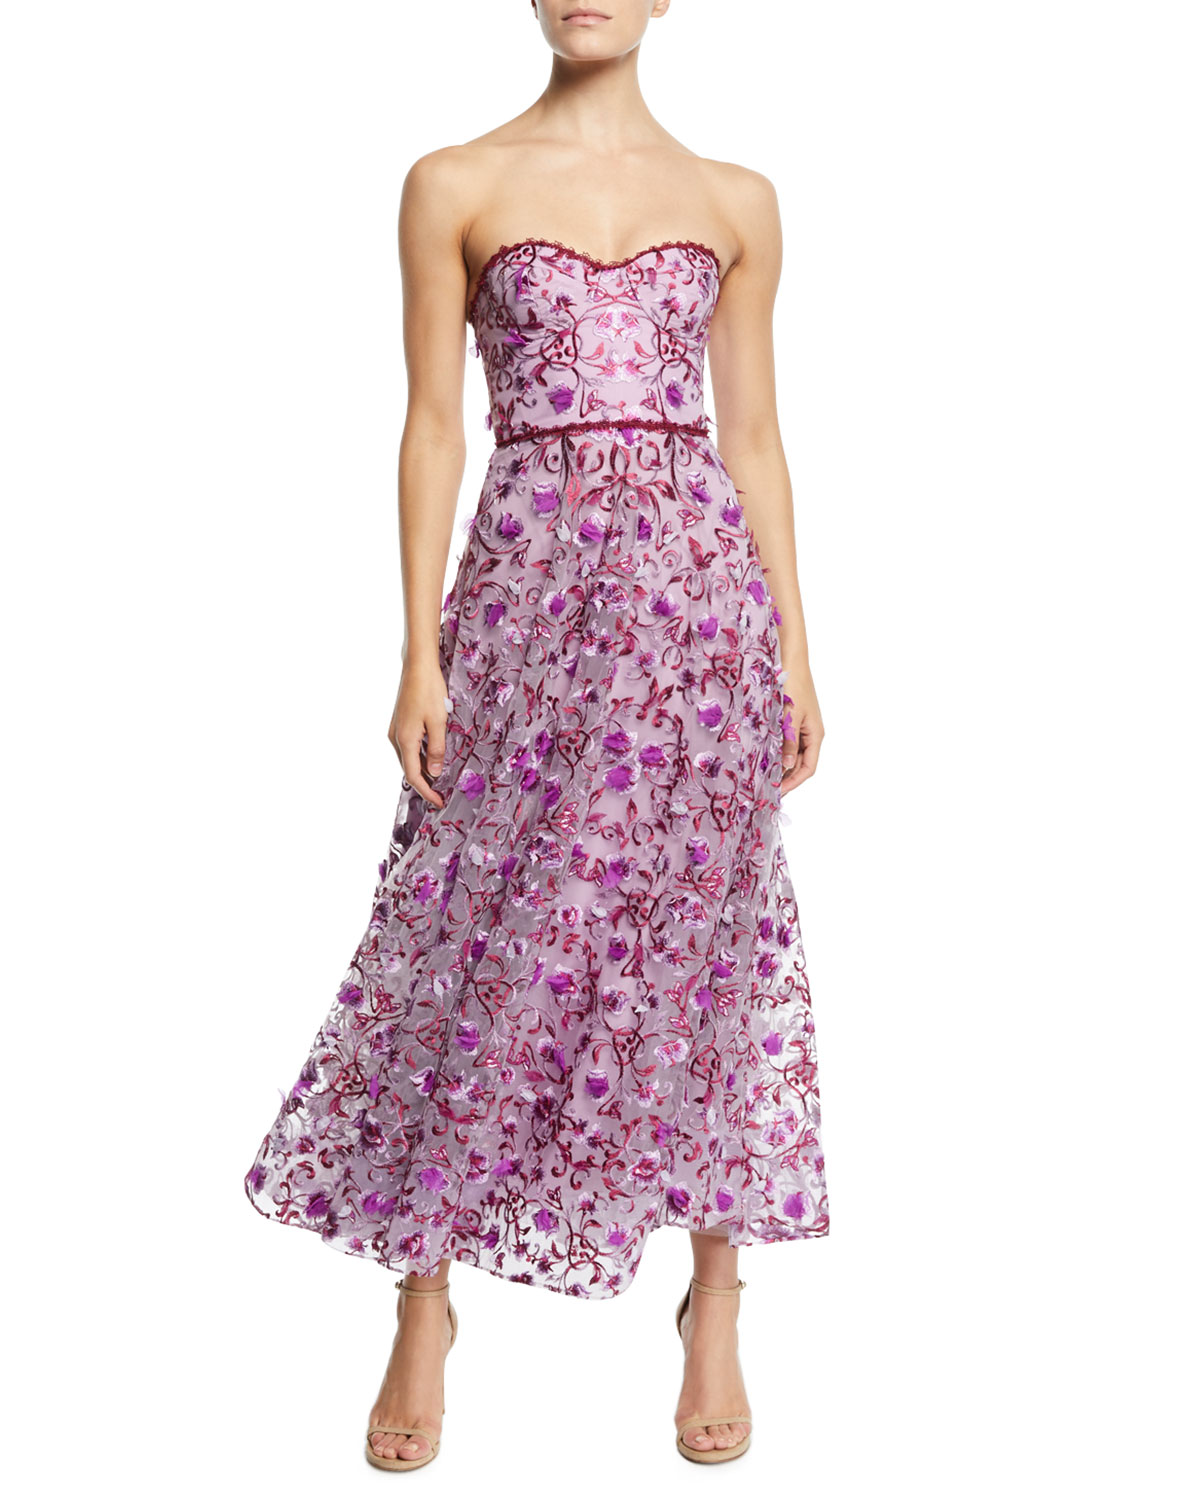 282f7742294 Marchesa Notte Strapless 3D Floral Embroidery Dress | Neiman Marcus